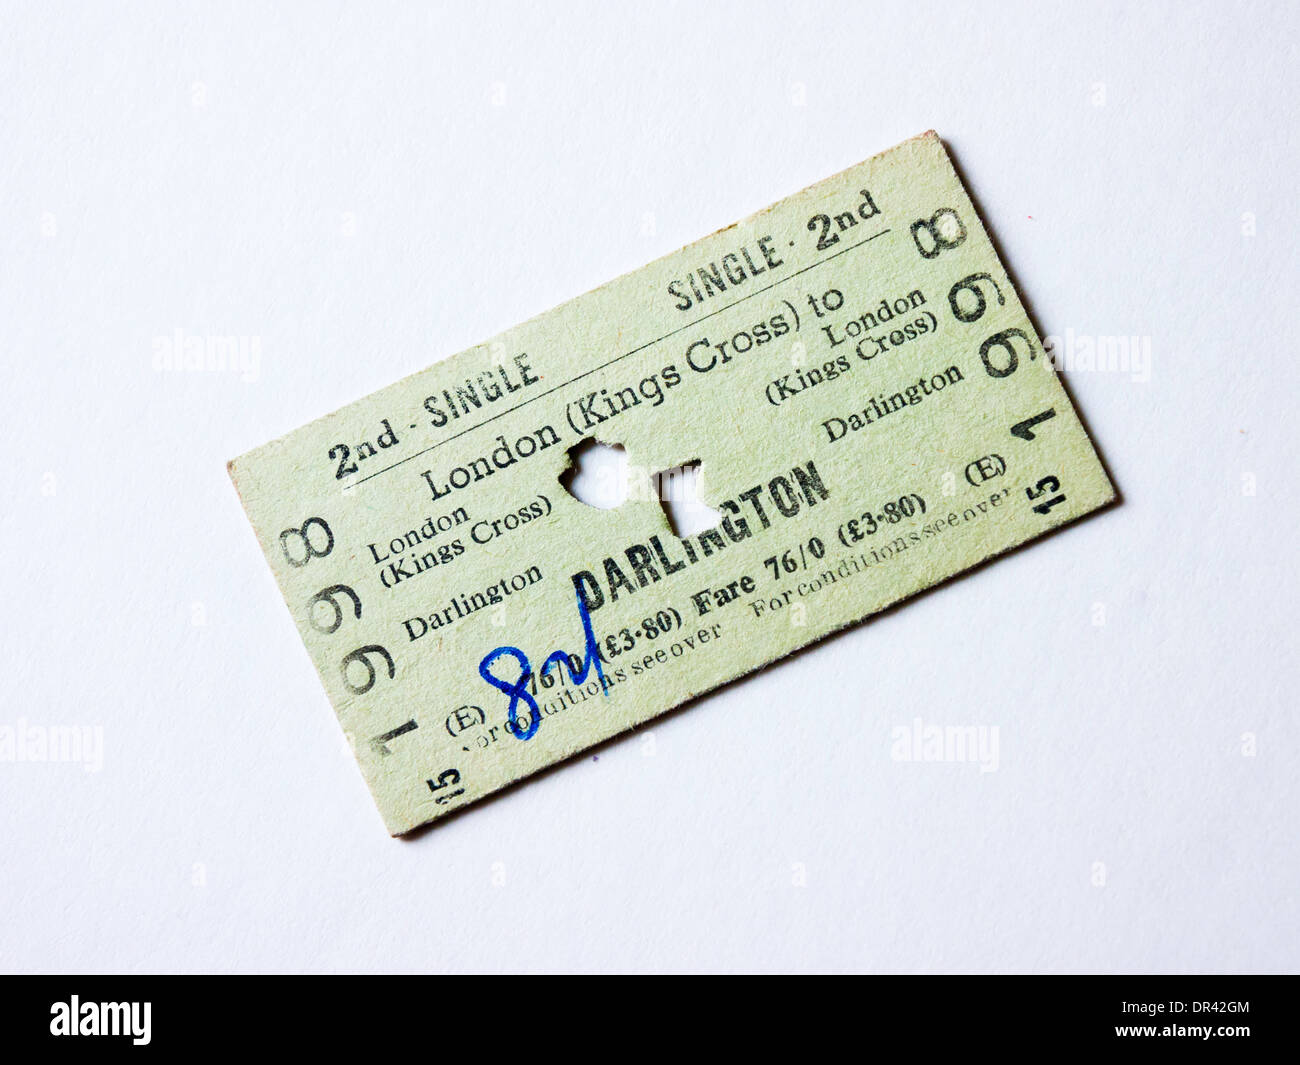 A second class Rail ticket between London and Darlington from the early 1970's priced in old and the new (Decimal) currency. - Stock Image